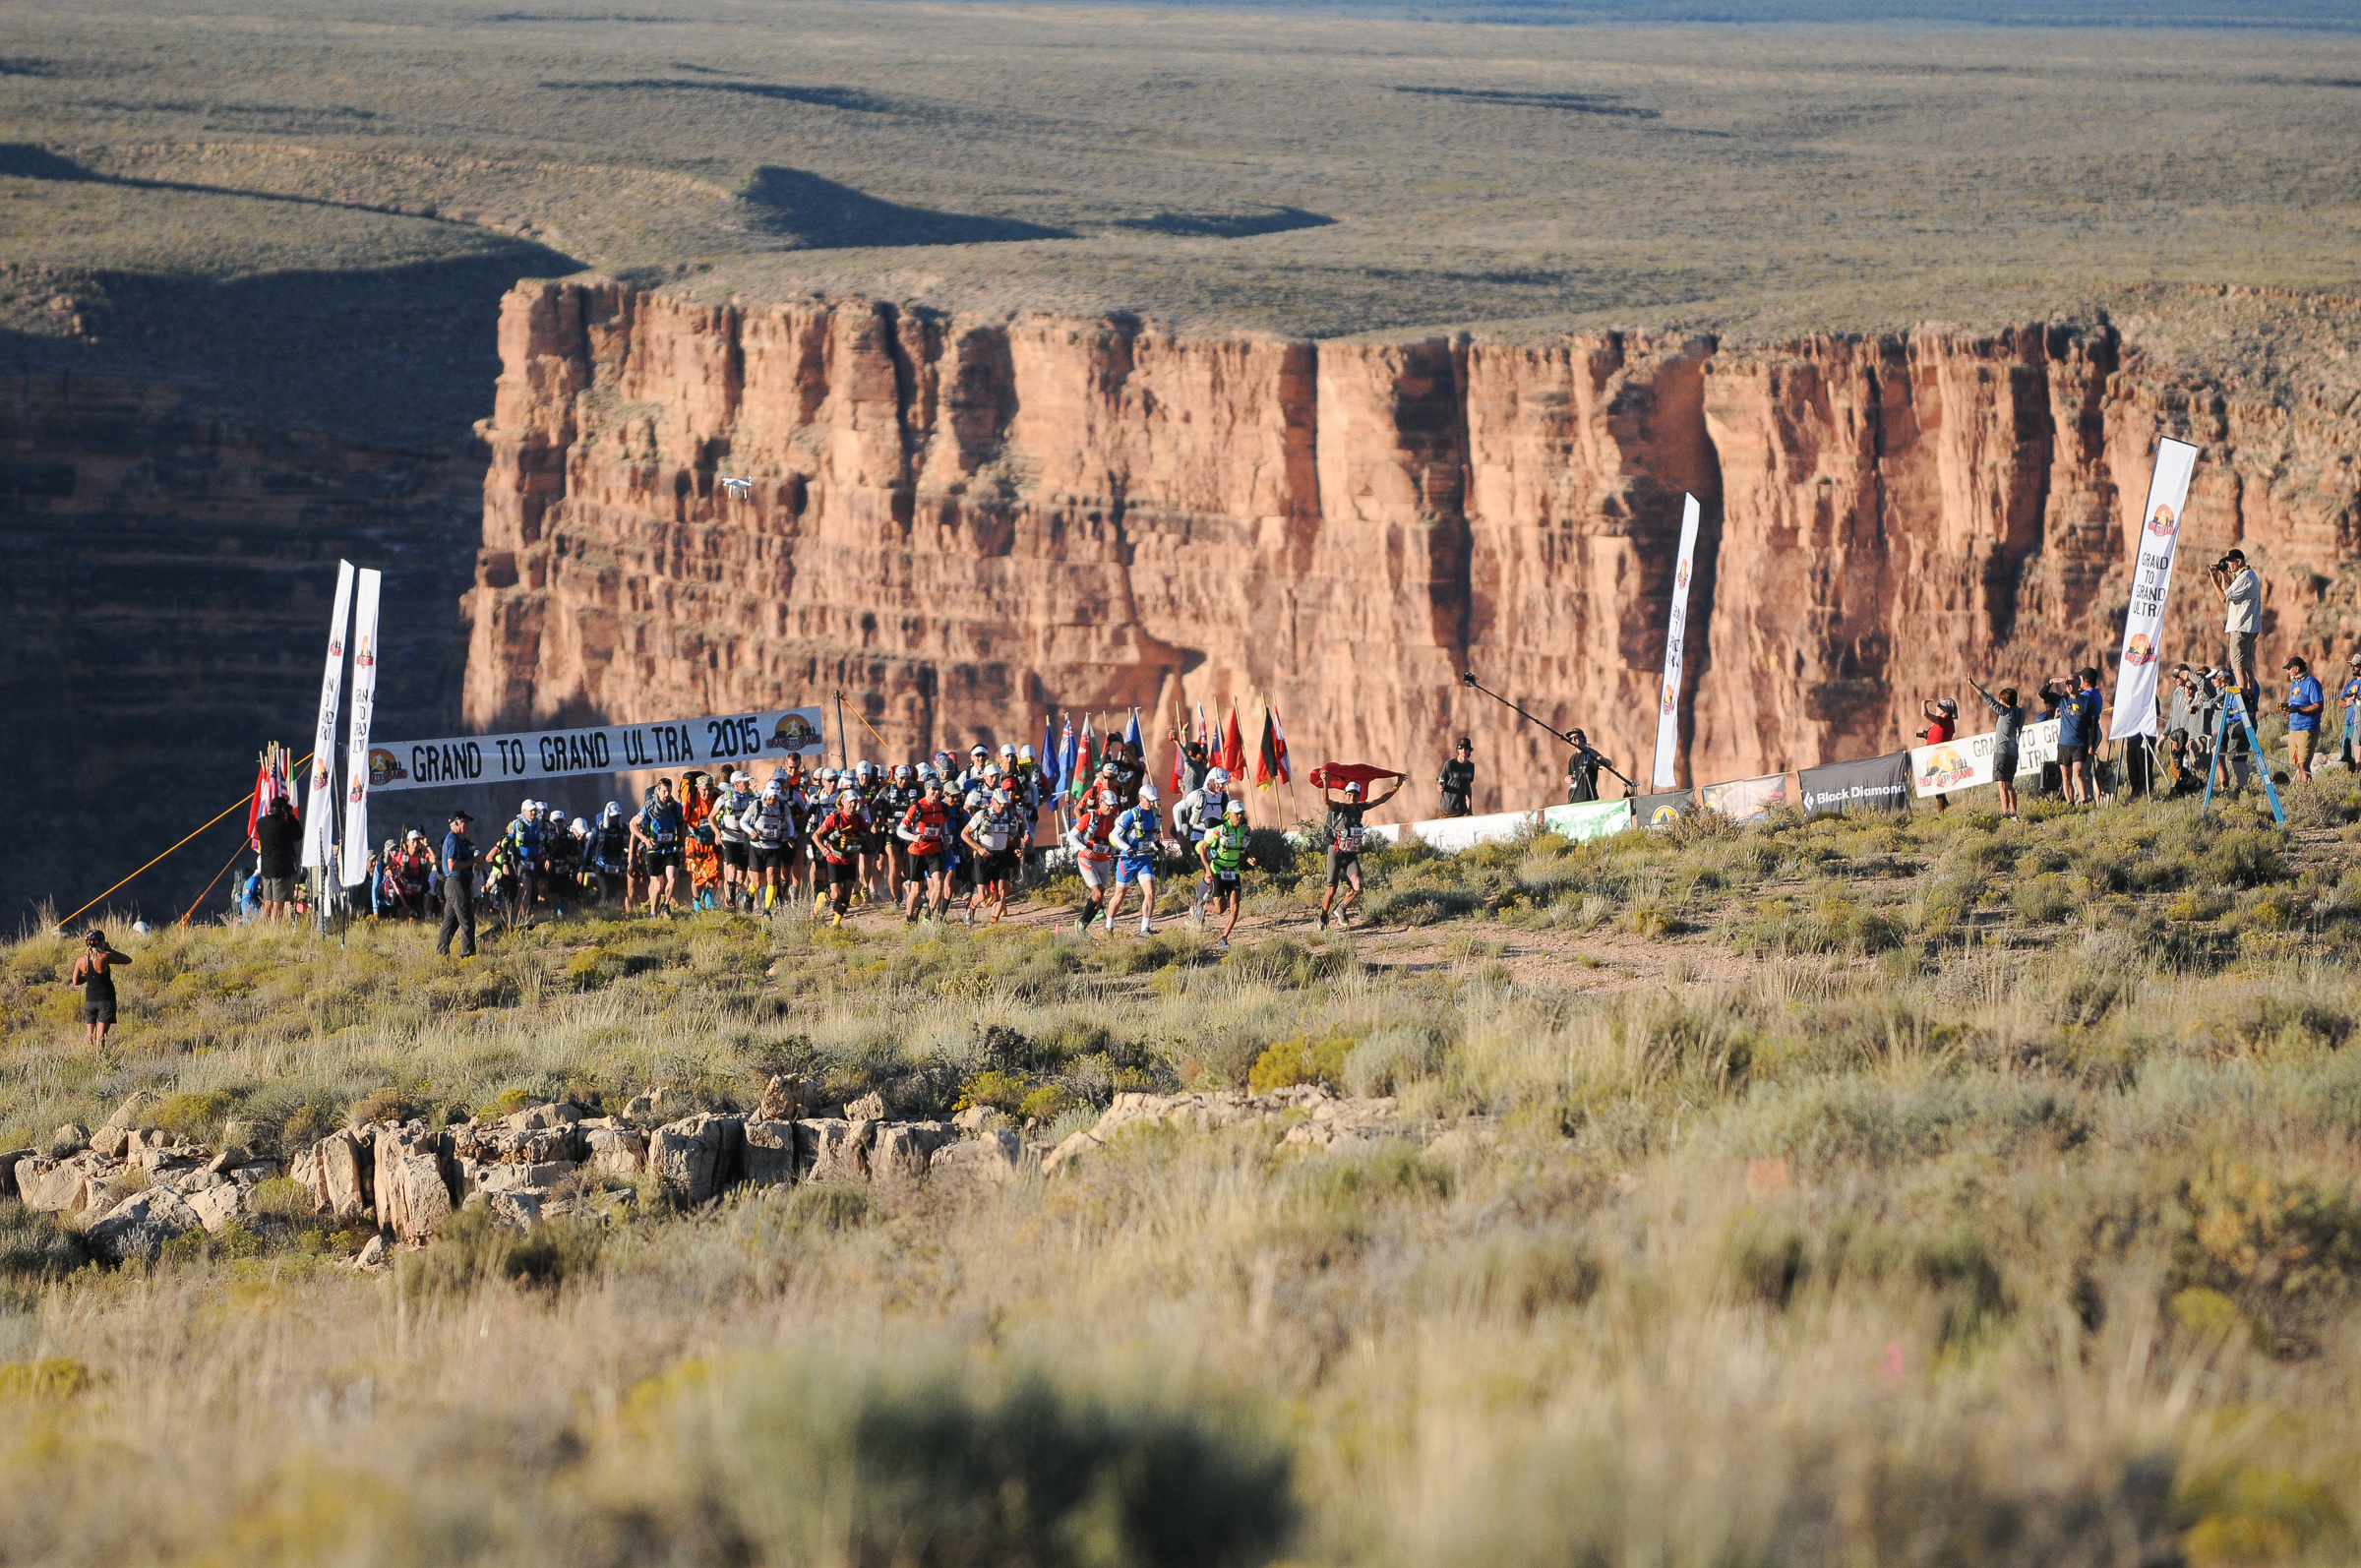 Starting line of the Grand to Grand Ultra, on the rim of the Grand Canyon.